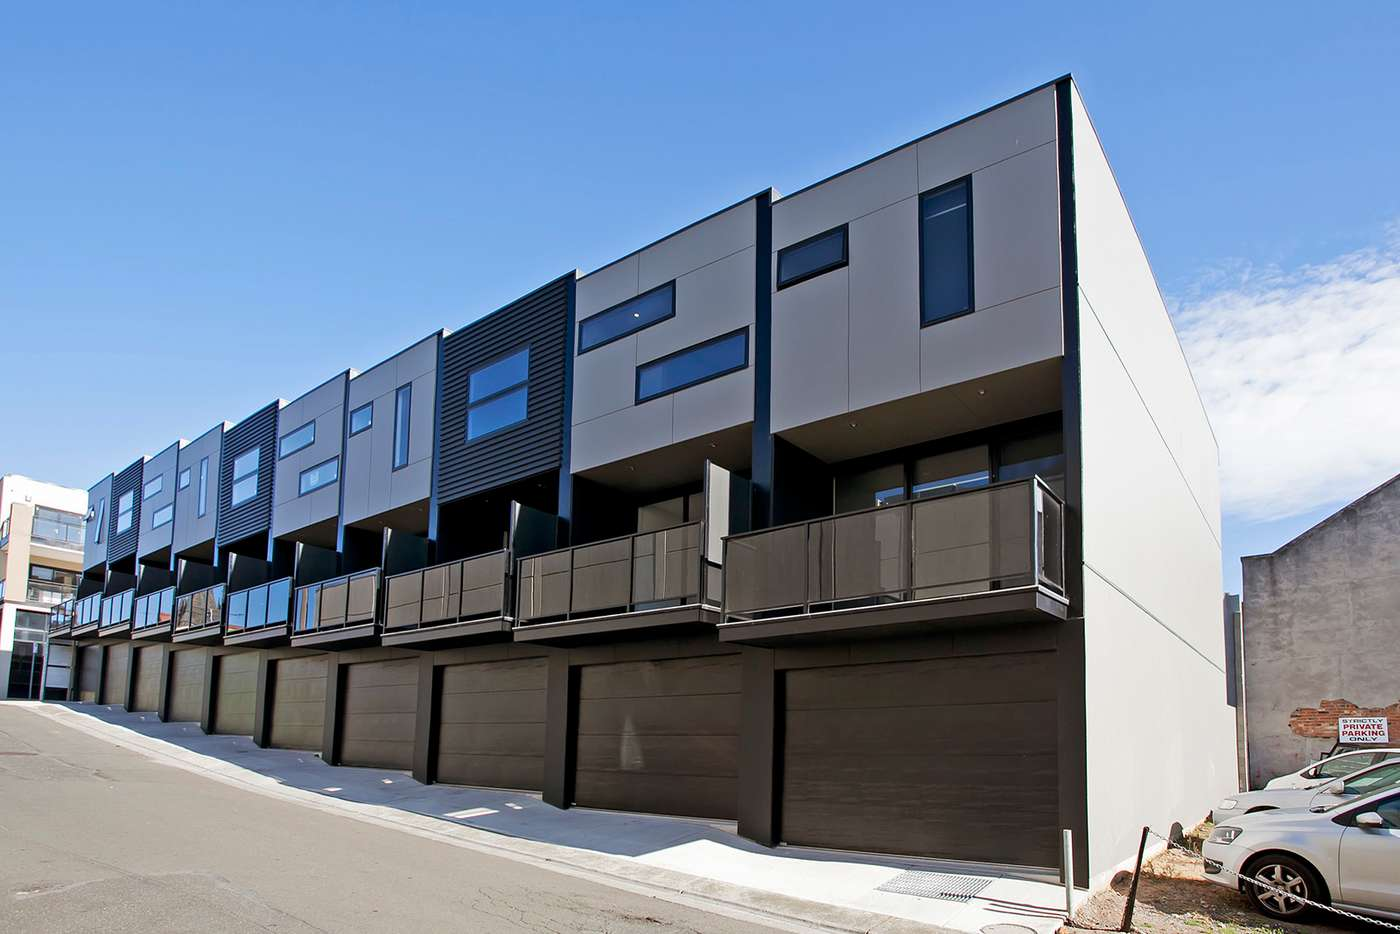 Main view of Homely house listing, 7/55 Little Ryrie Street, Geelong VIC 3220